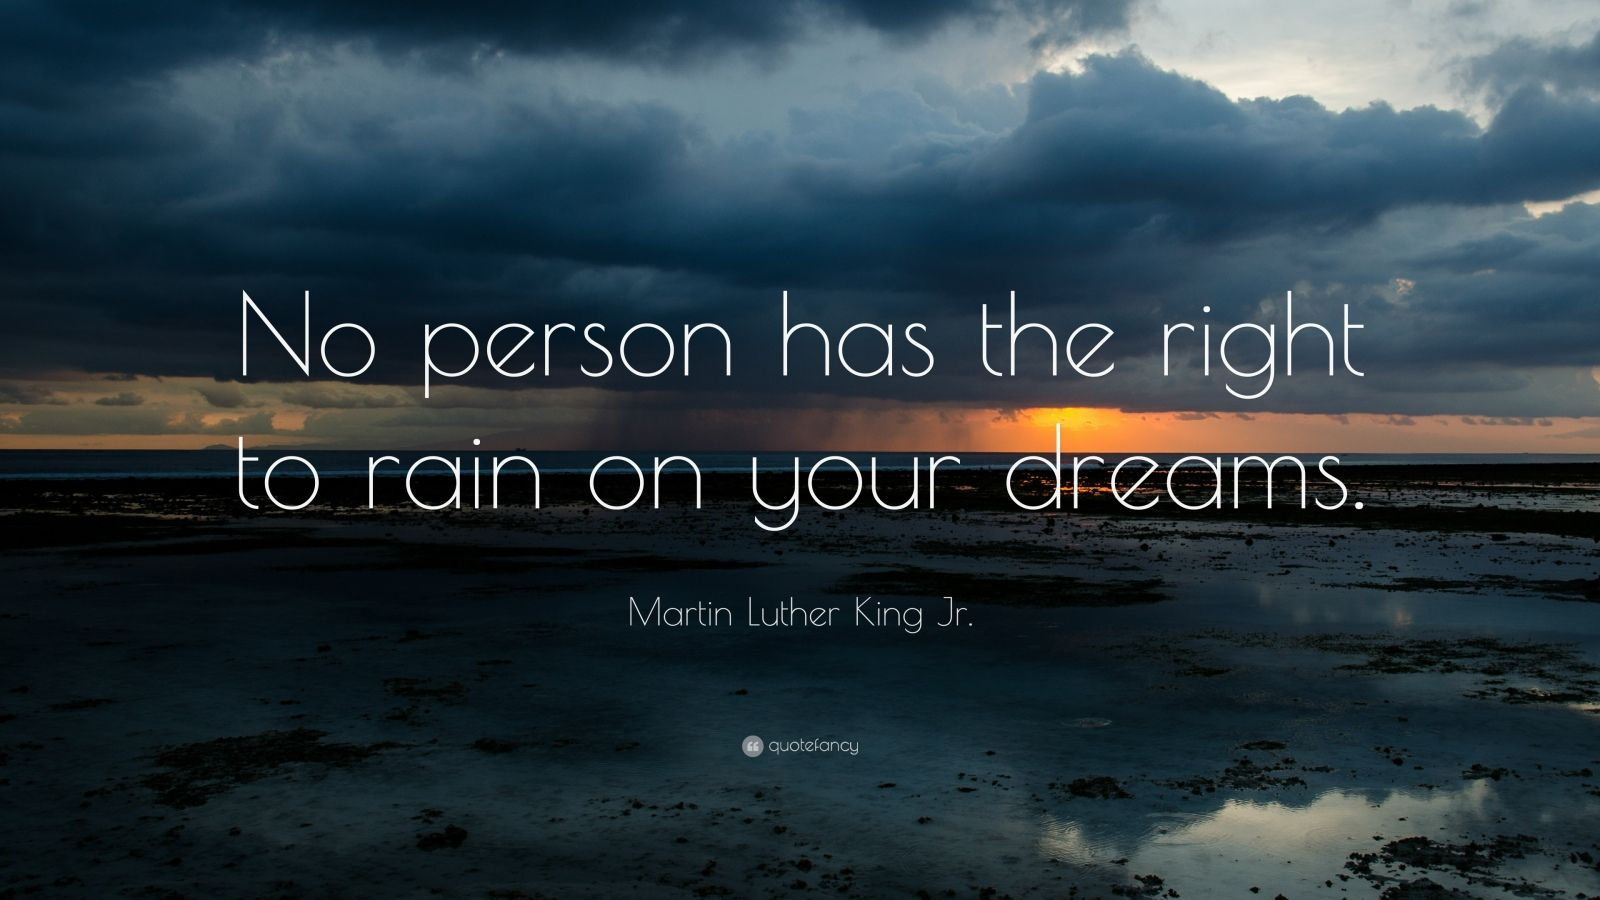 martin luther king jr quotes 83 wallpapers quotefancy